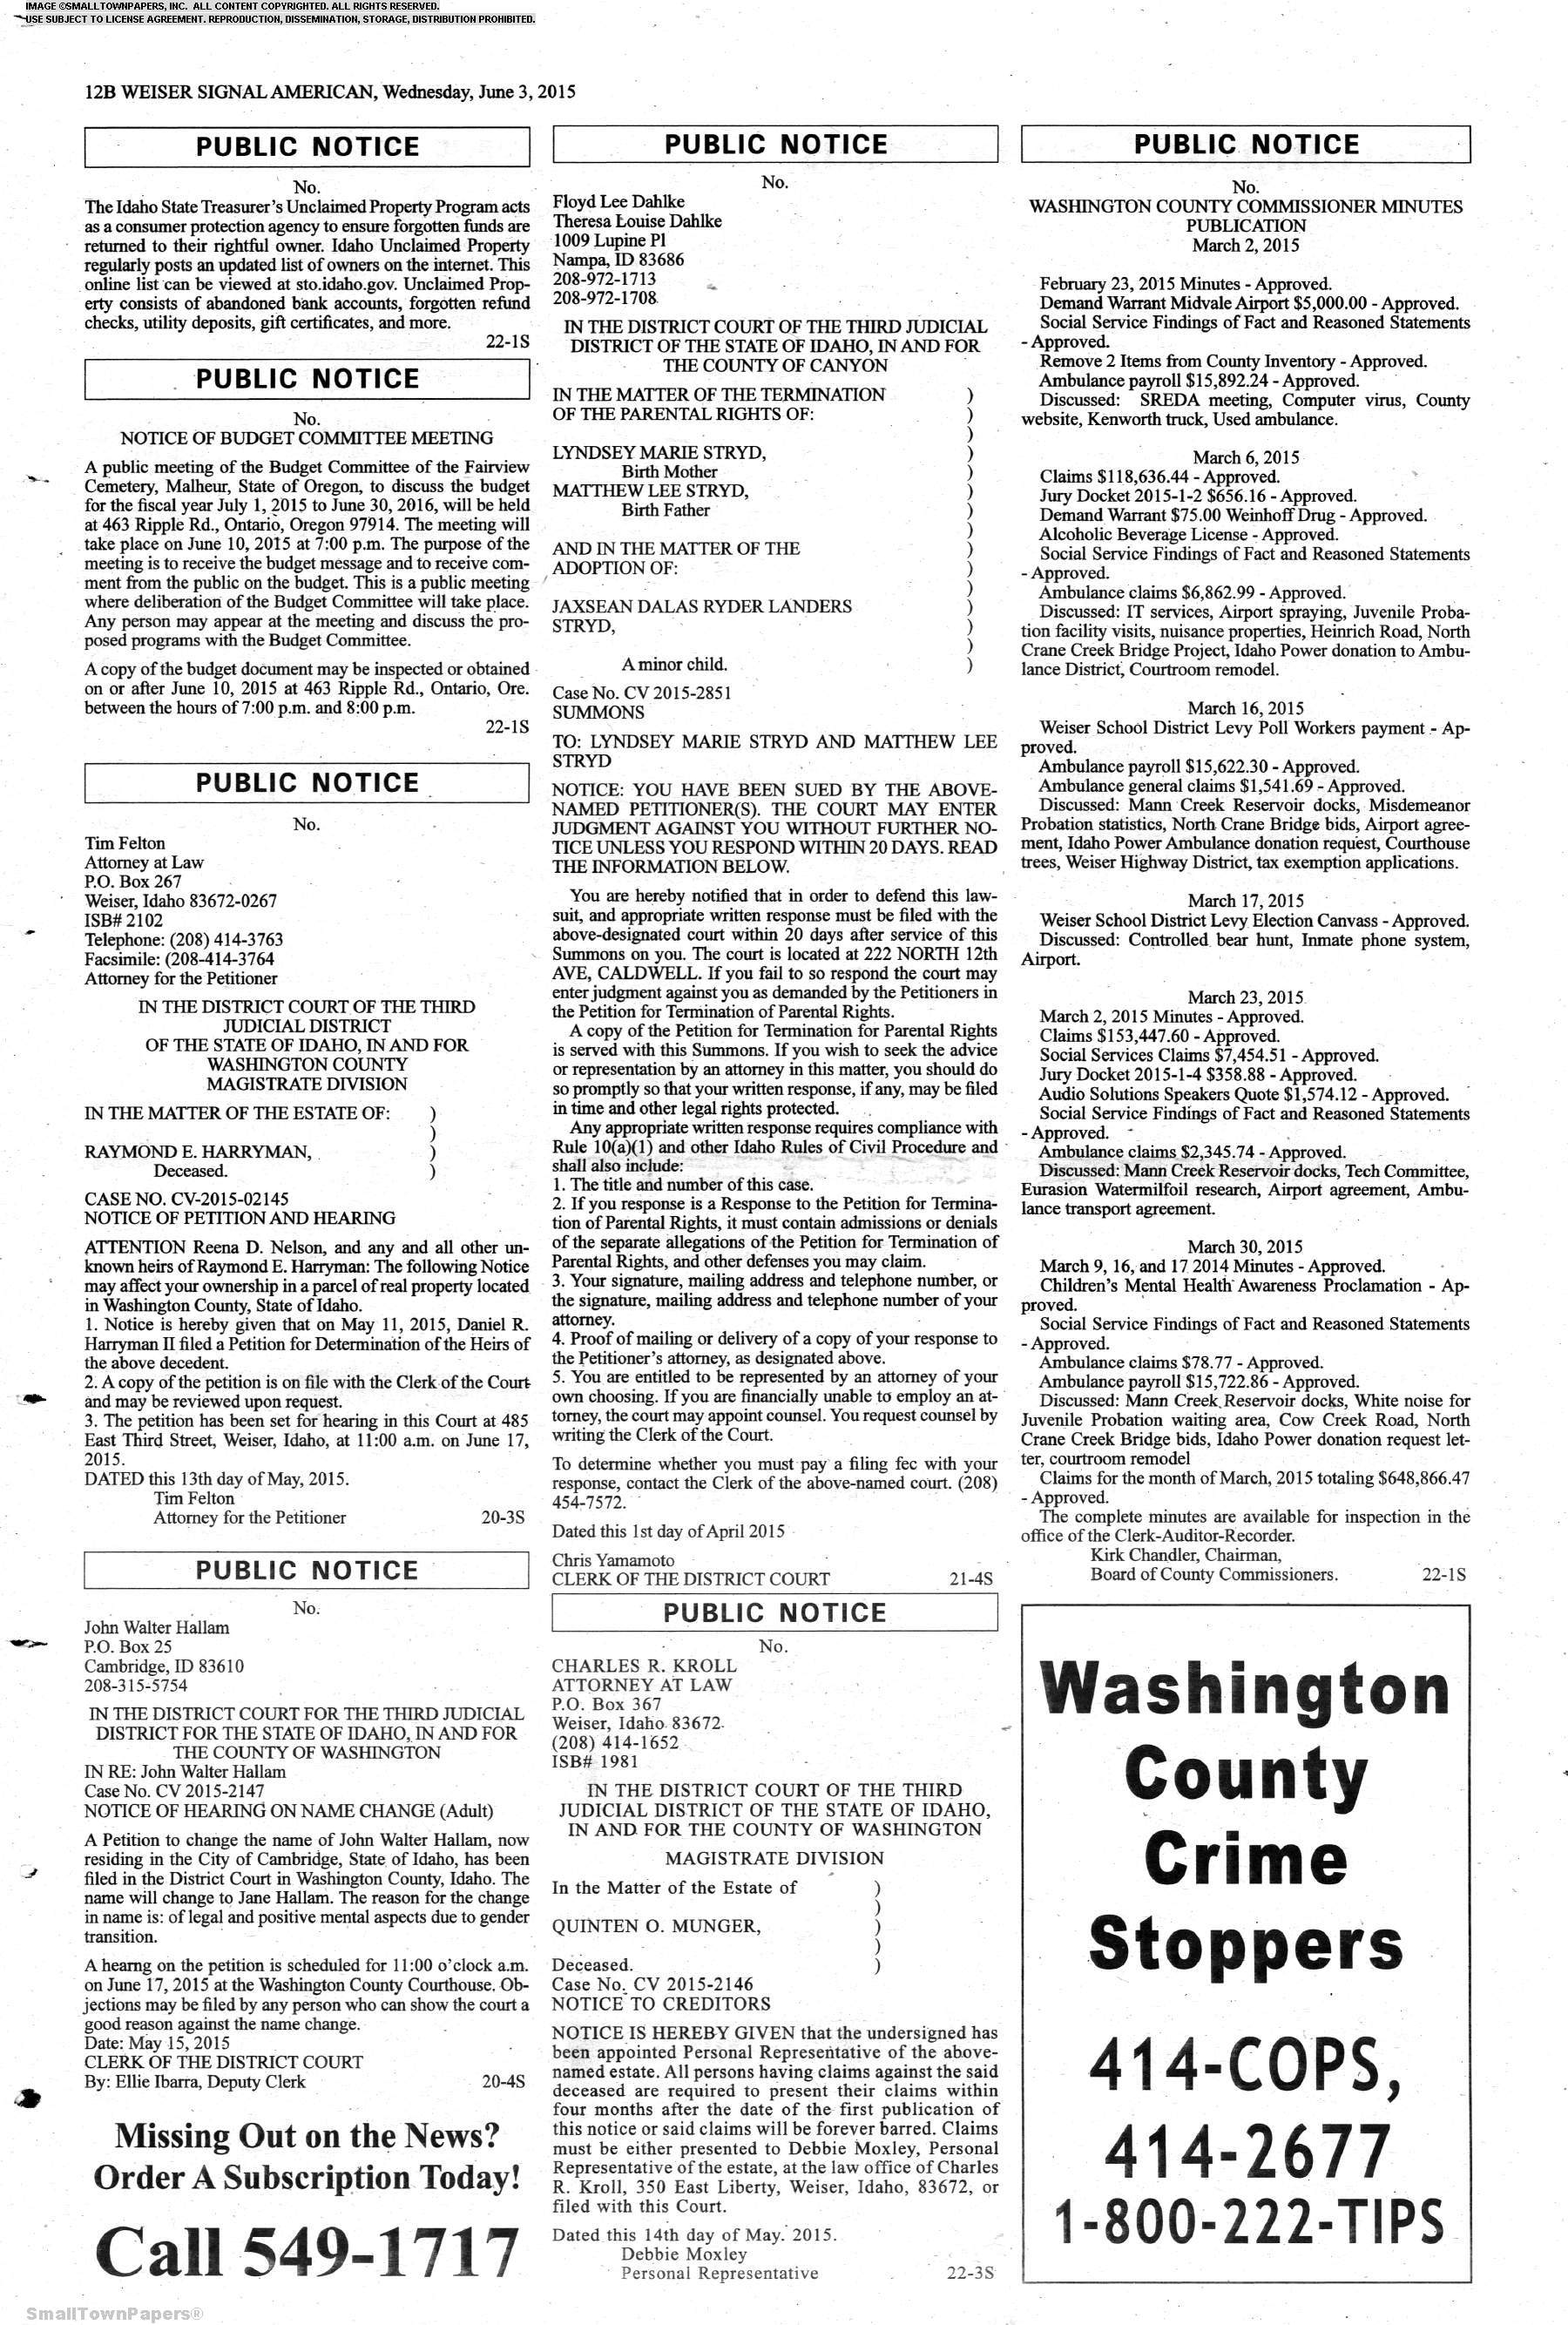 Weiser Signal American June 3 2015 Page 24